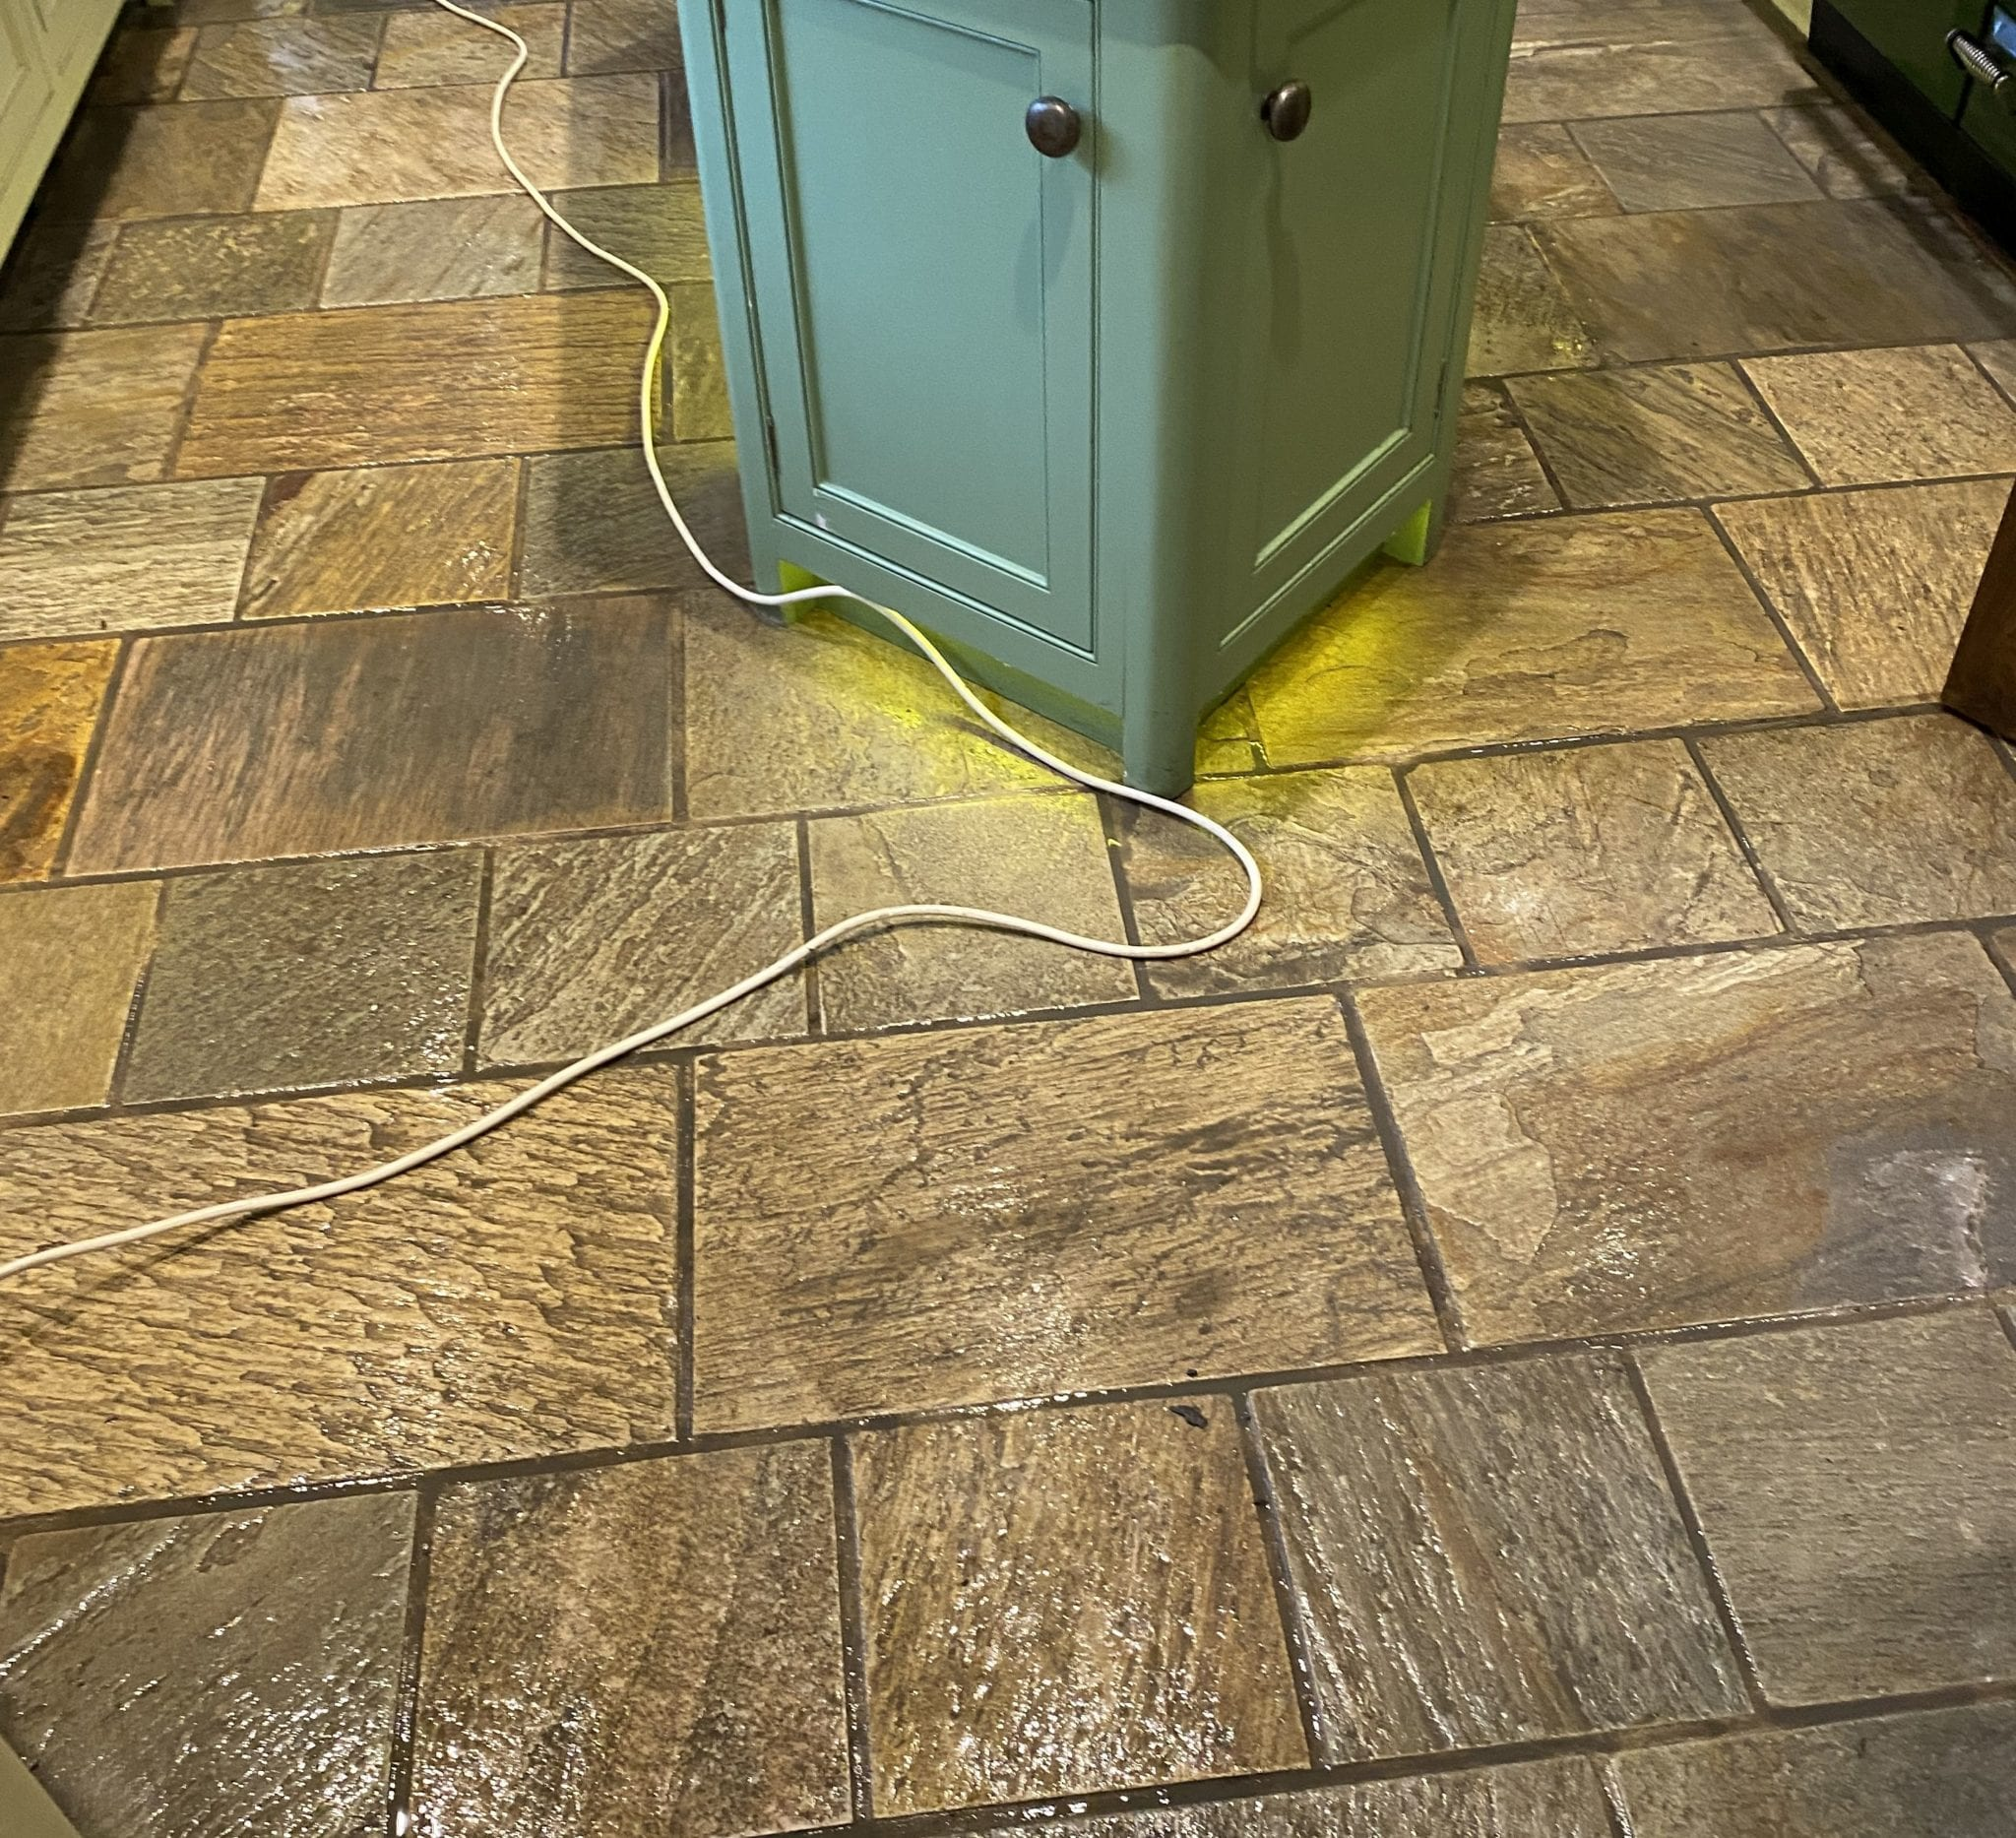 3a Tile Doctor cleaning company can't beat us when it comes to cleaning stone tiles